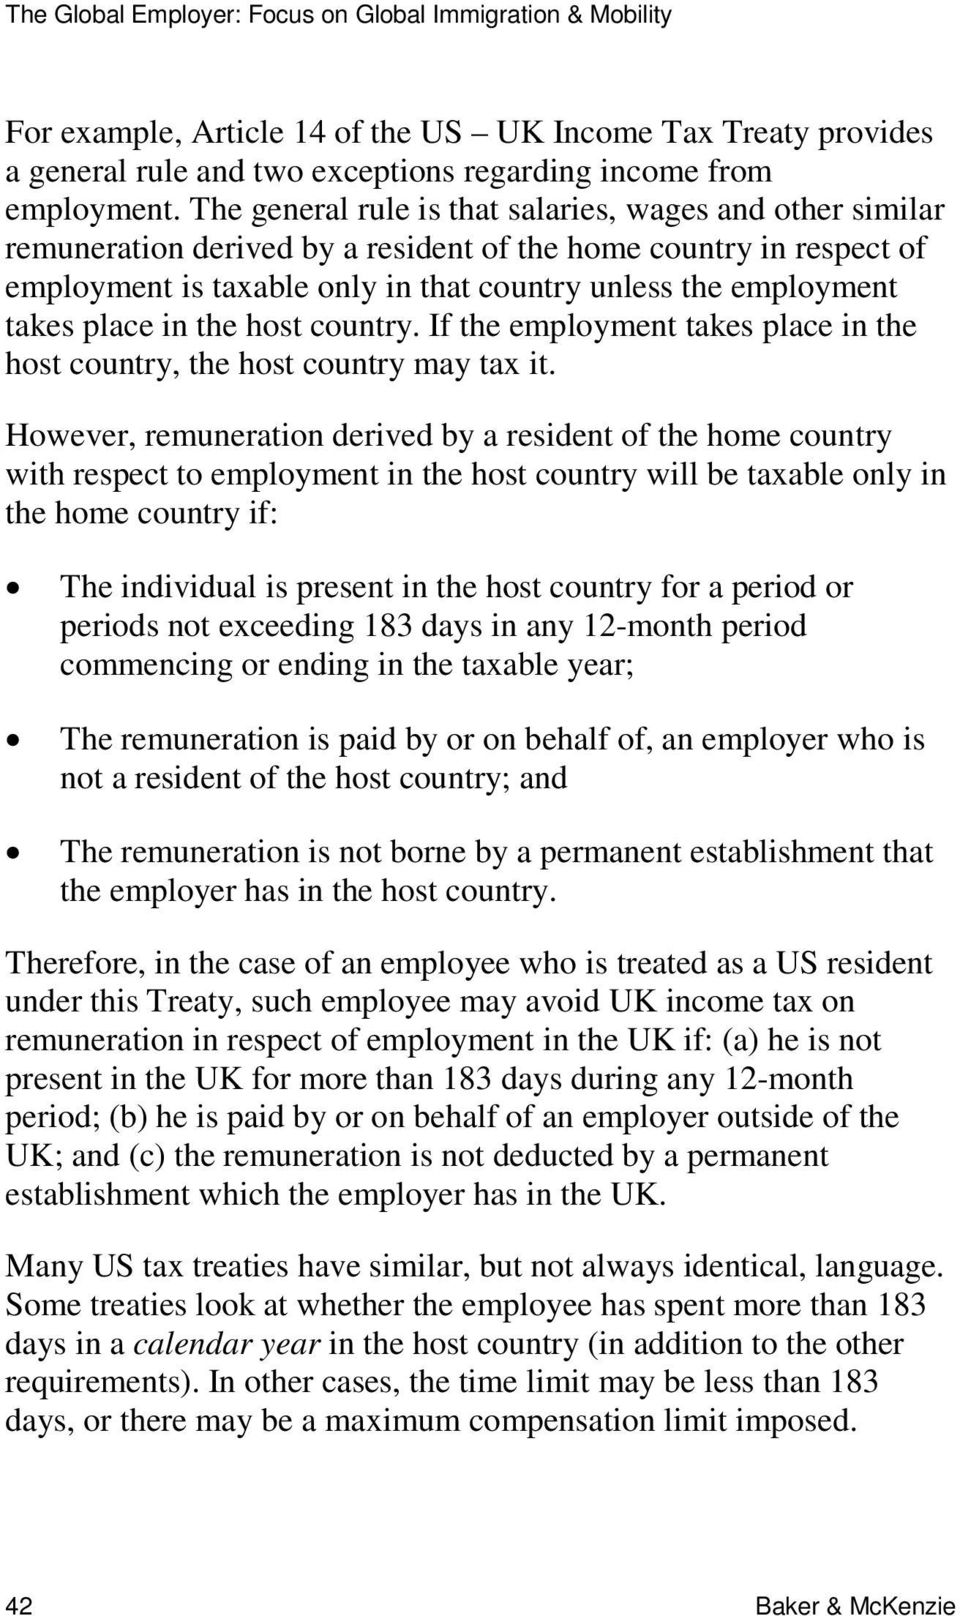 place in the host country. If the employment takes place in the host country, the host country may tax it.